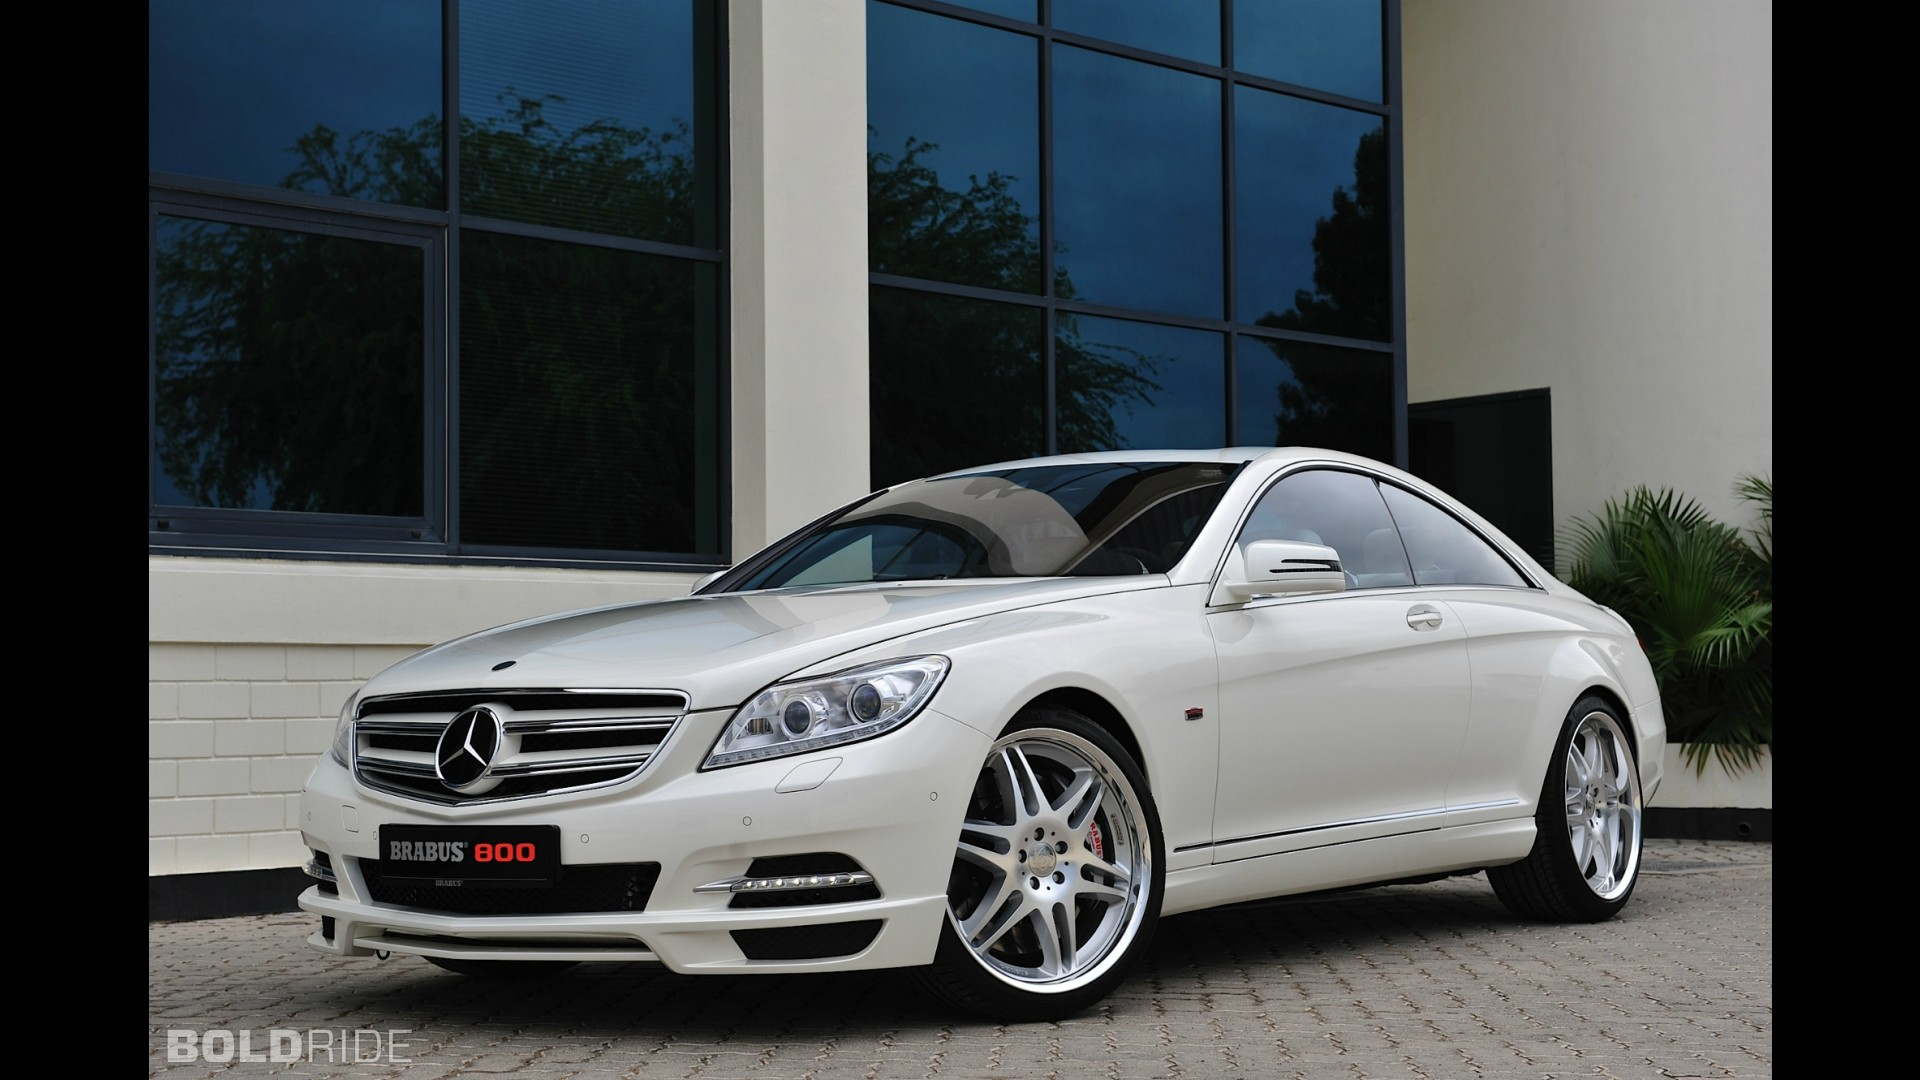 Brabus Mercedes-Benz CL Coupe 800